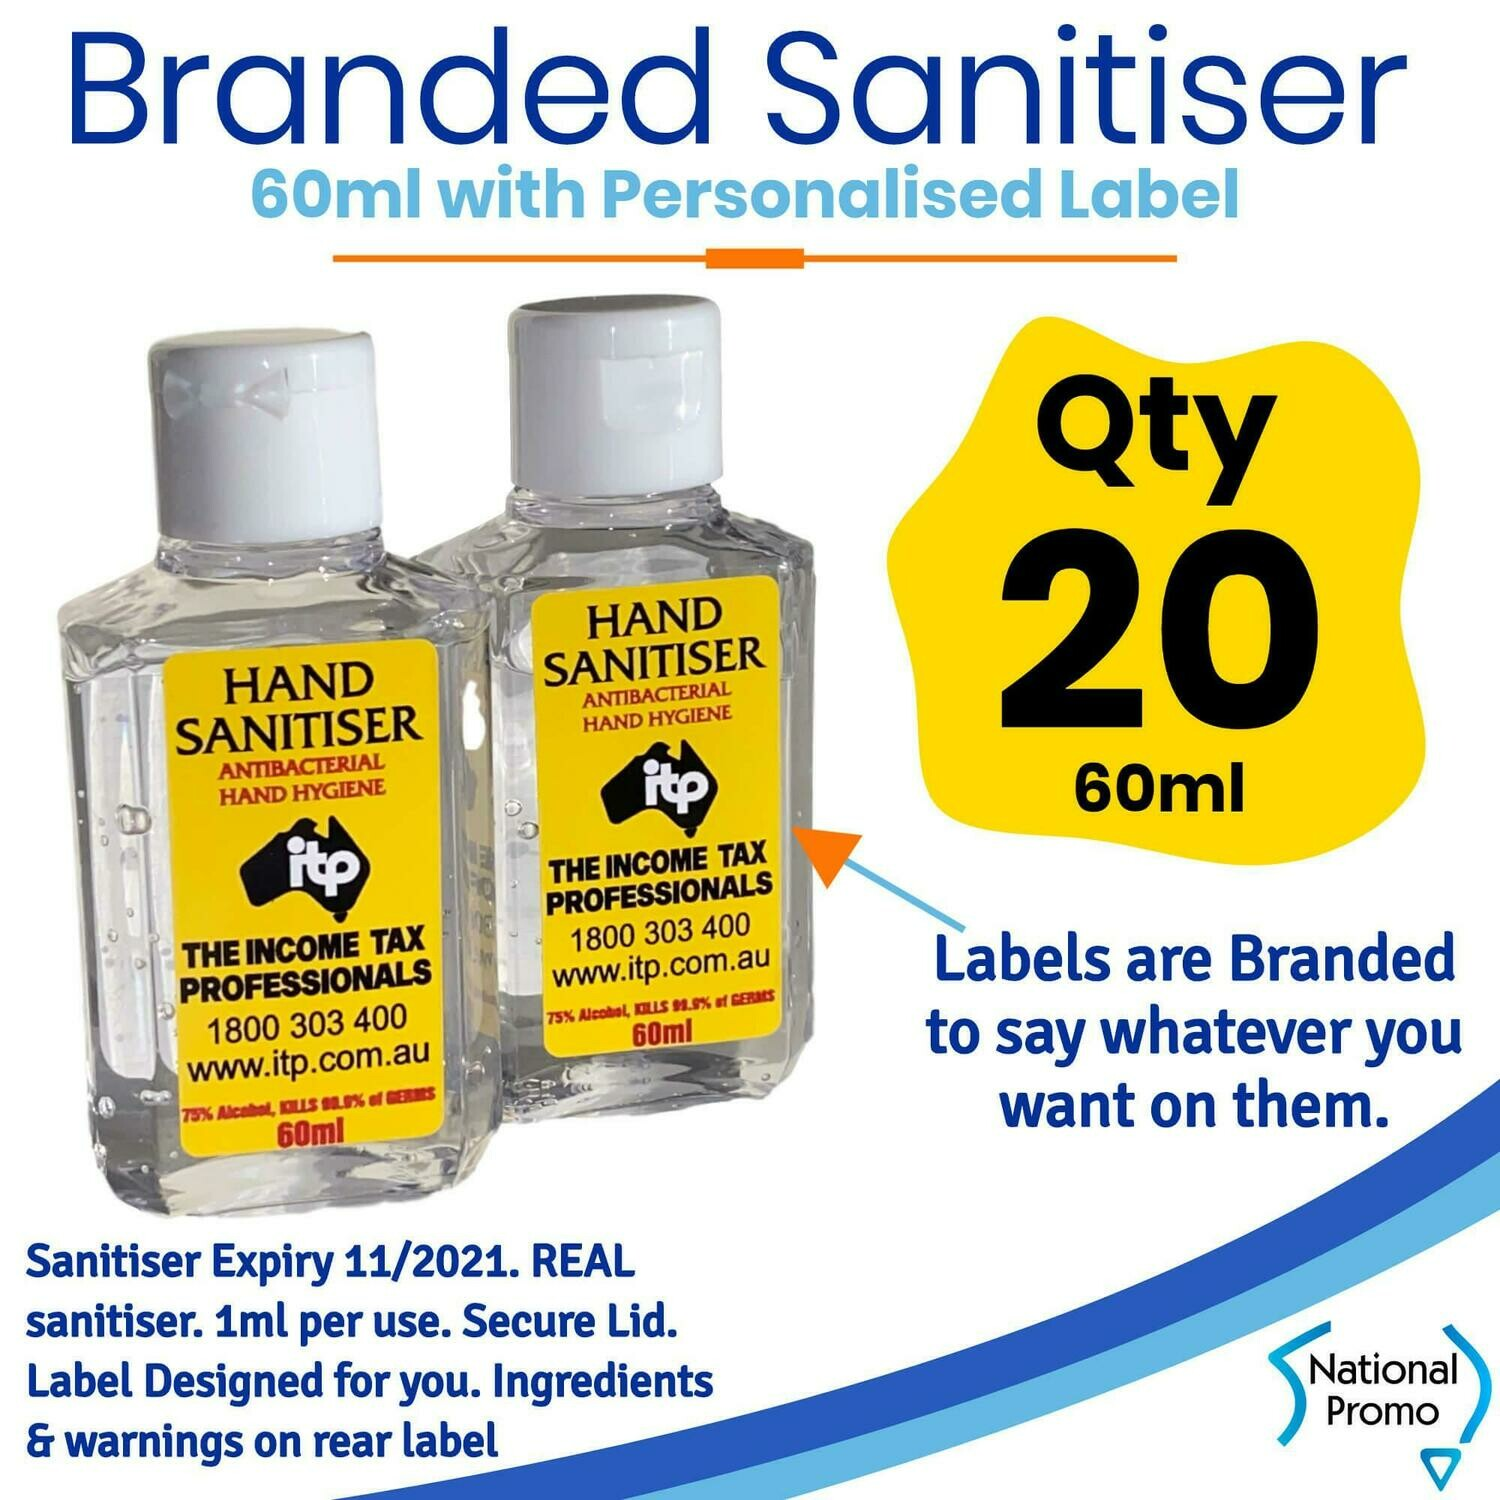 Qty of 20 x 60ml Hand Sanitiser with Personalised Labels